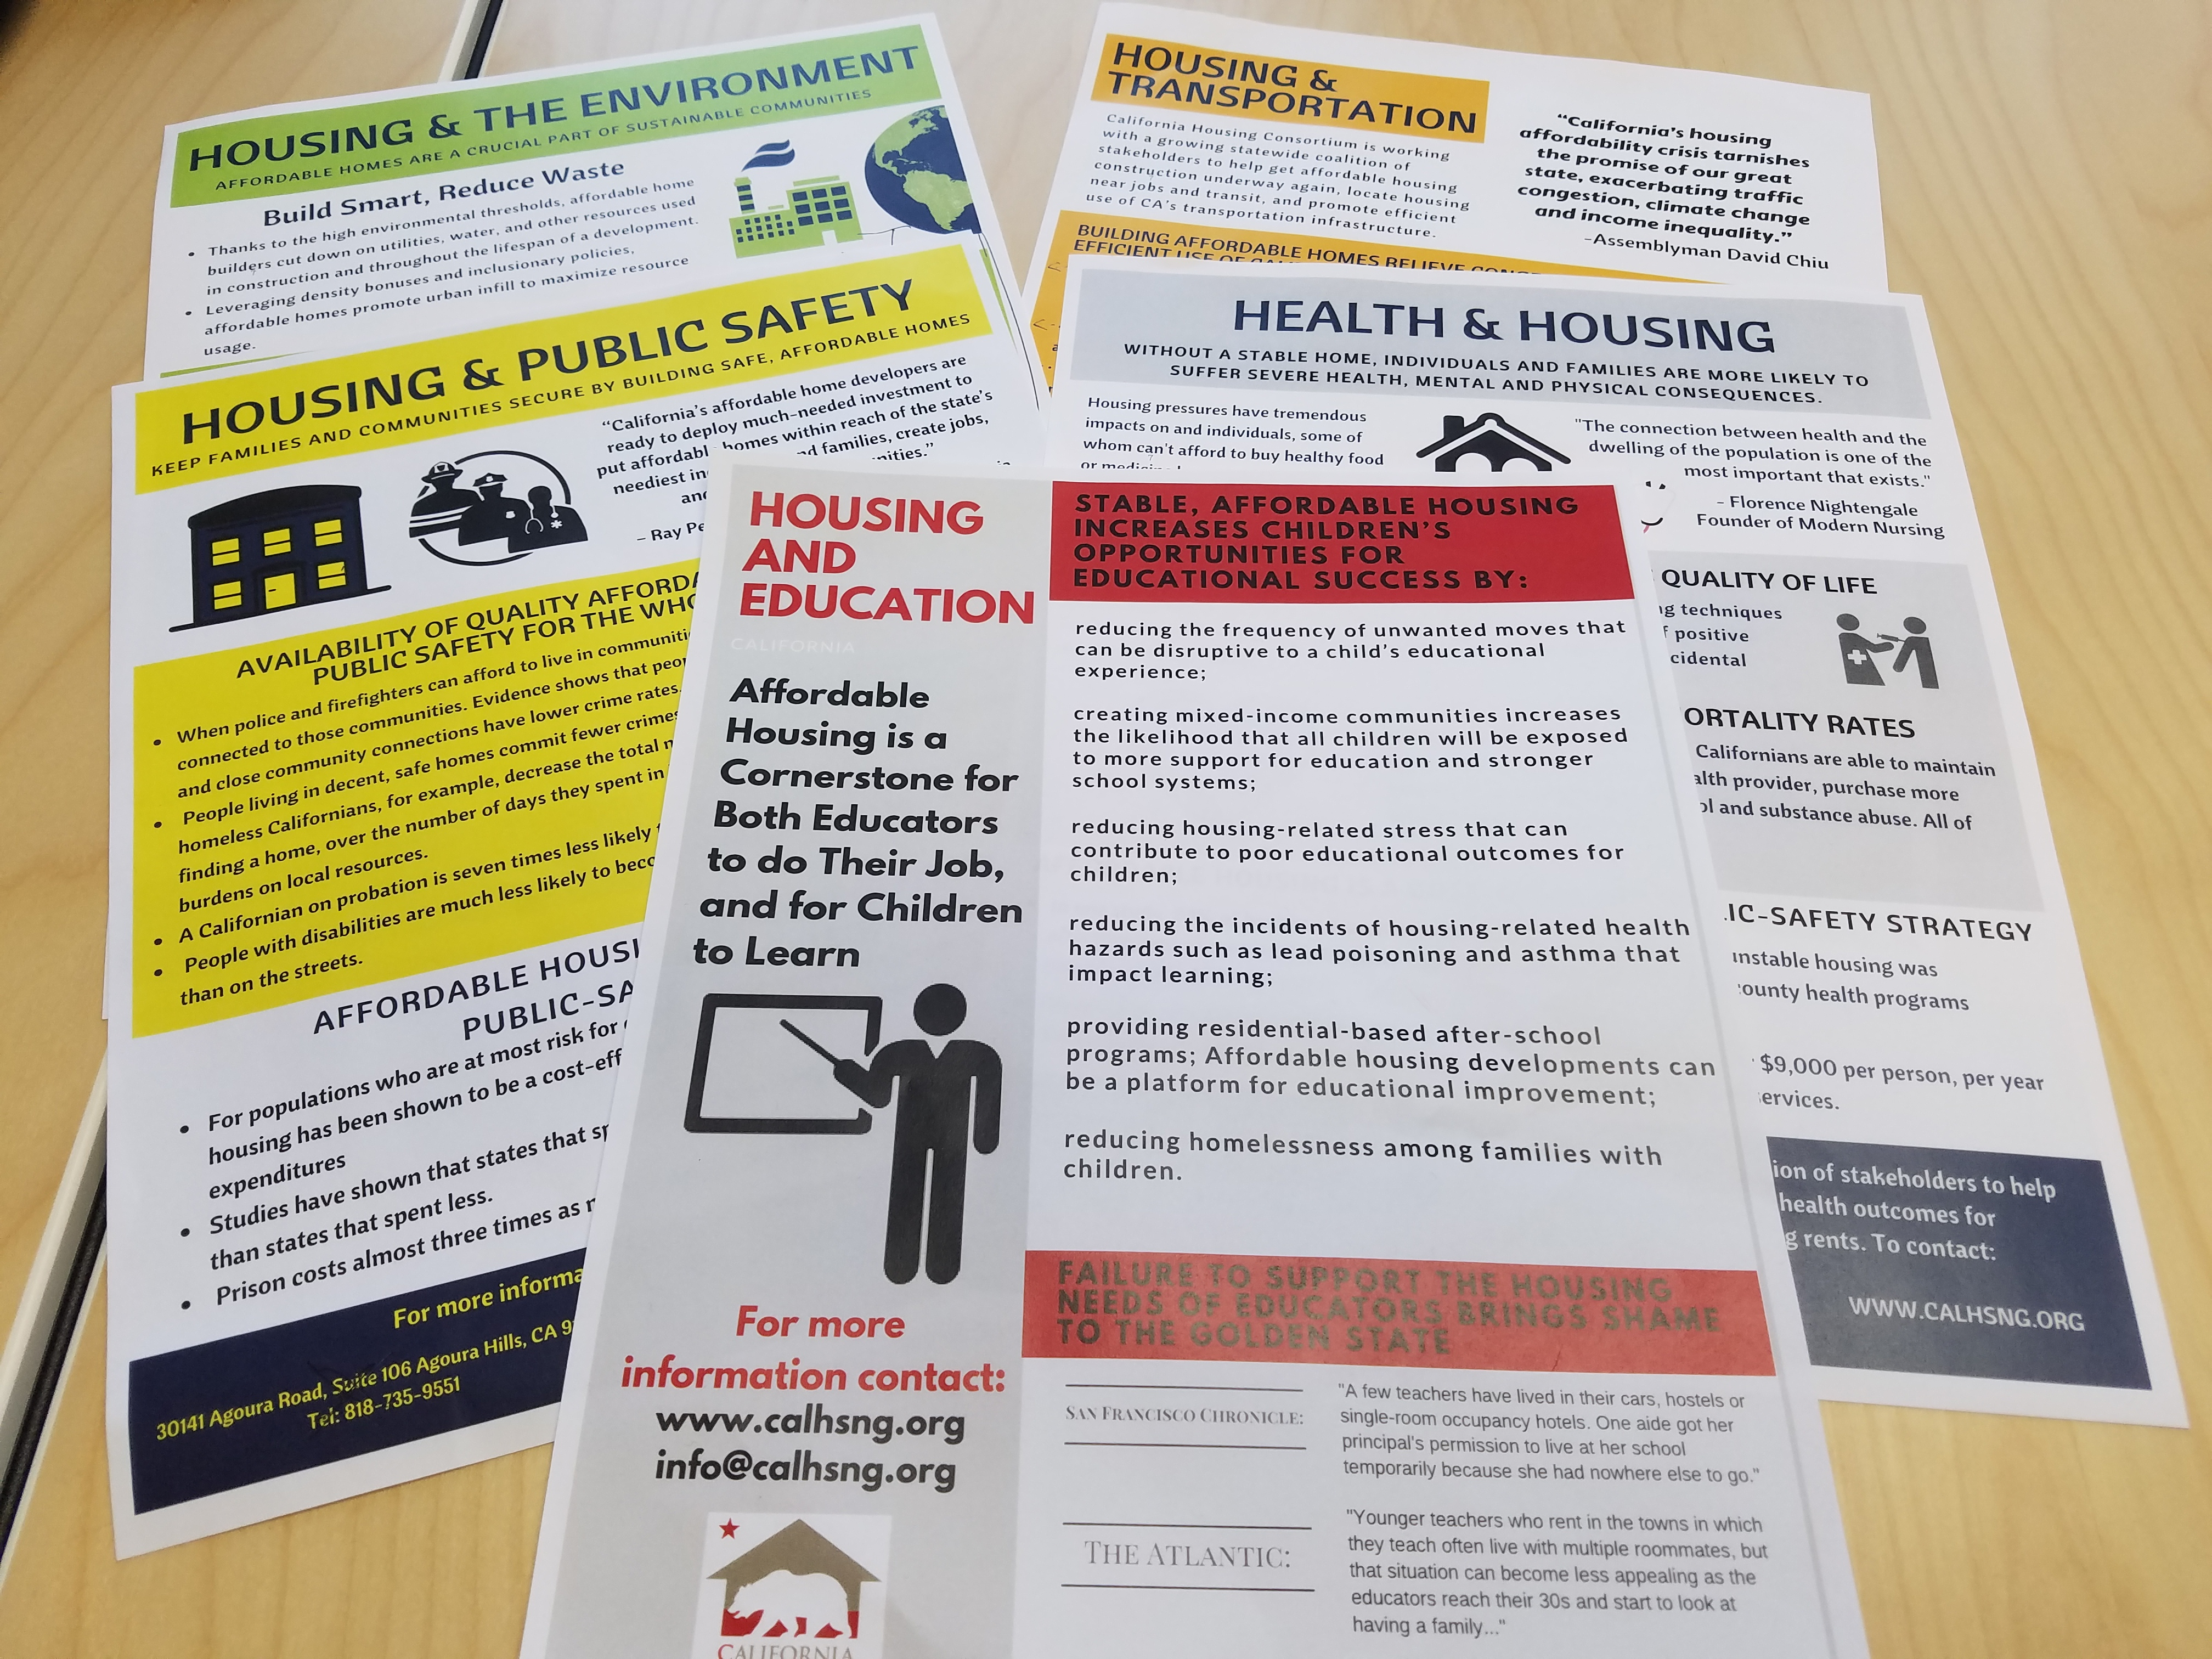 New factsheets available on our resources page